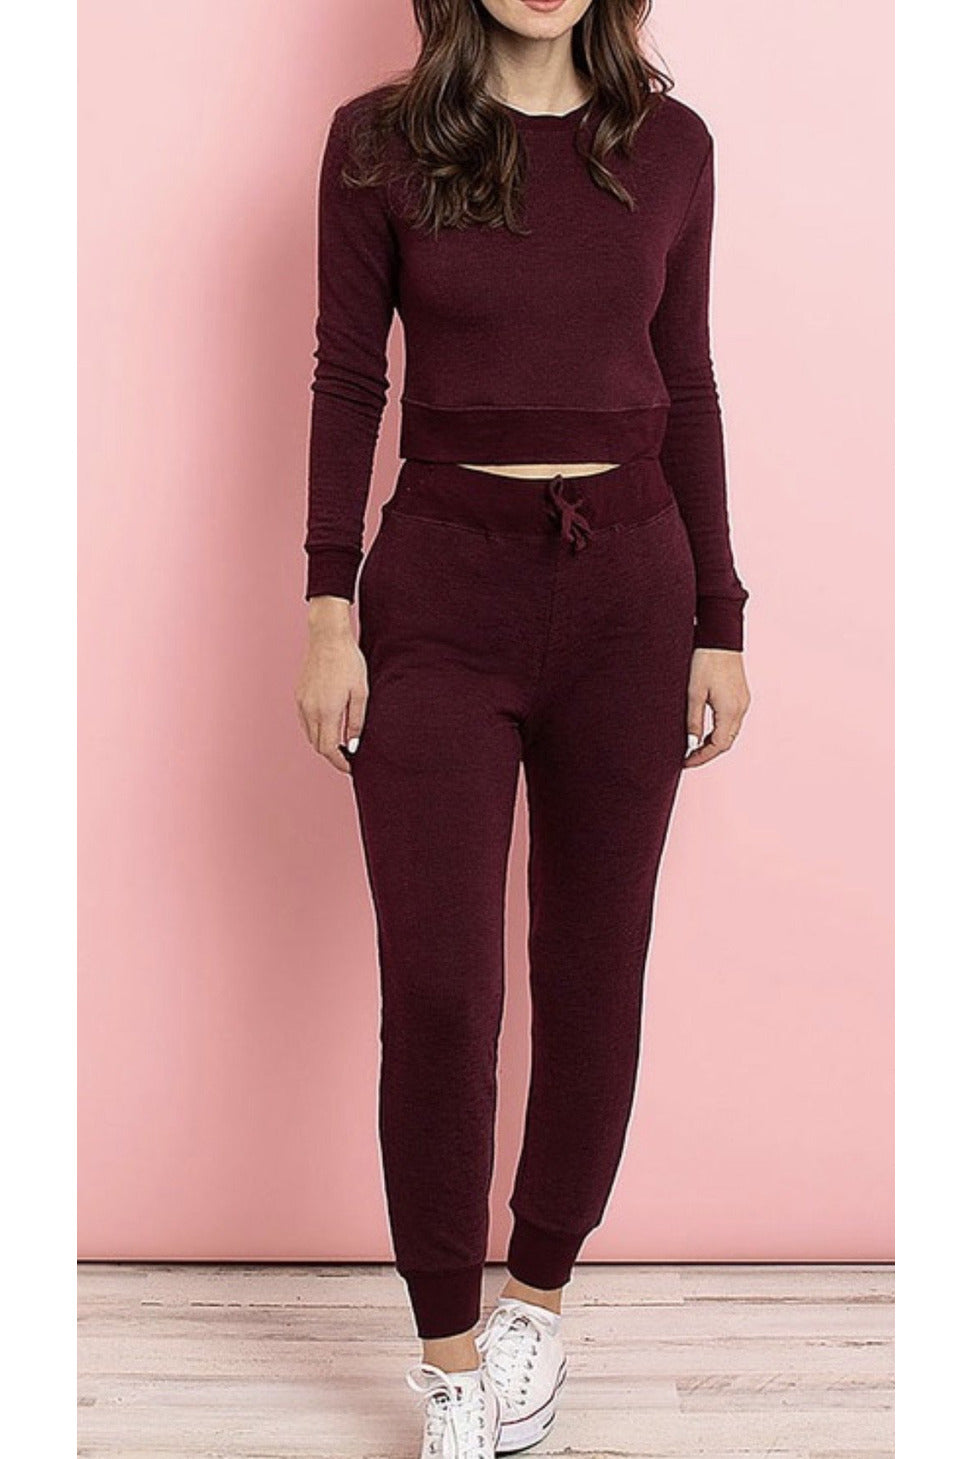 Rachelle Crop Top & Jogger Pant Set in Burgundy